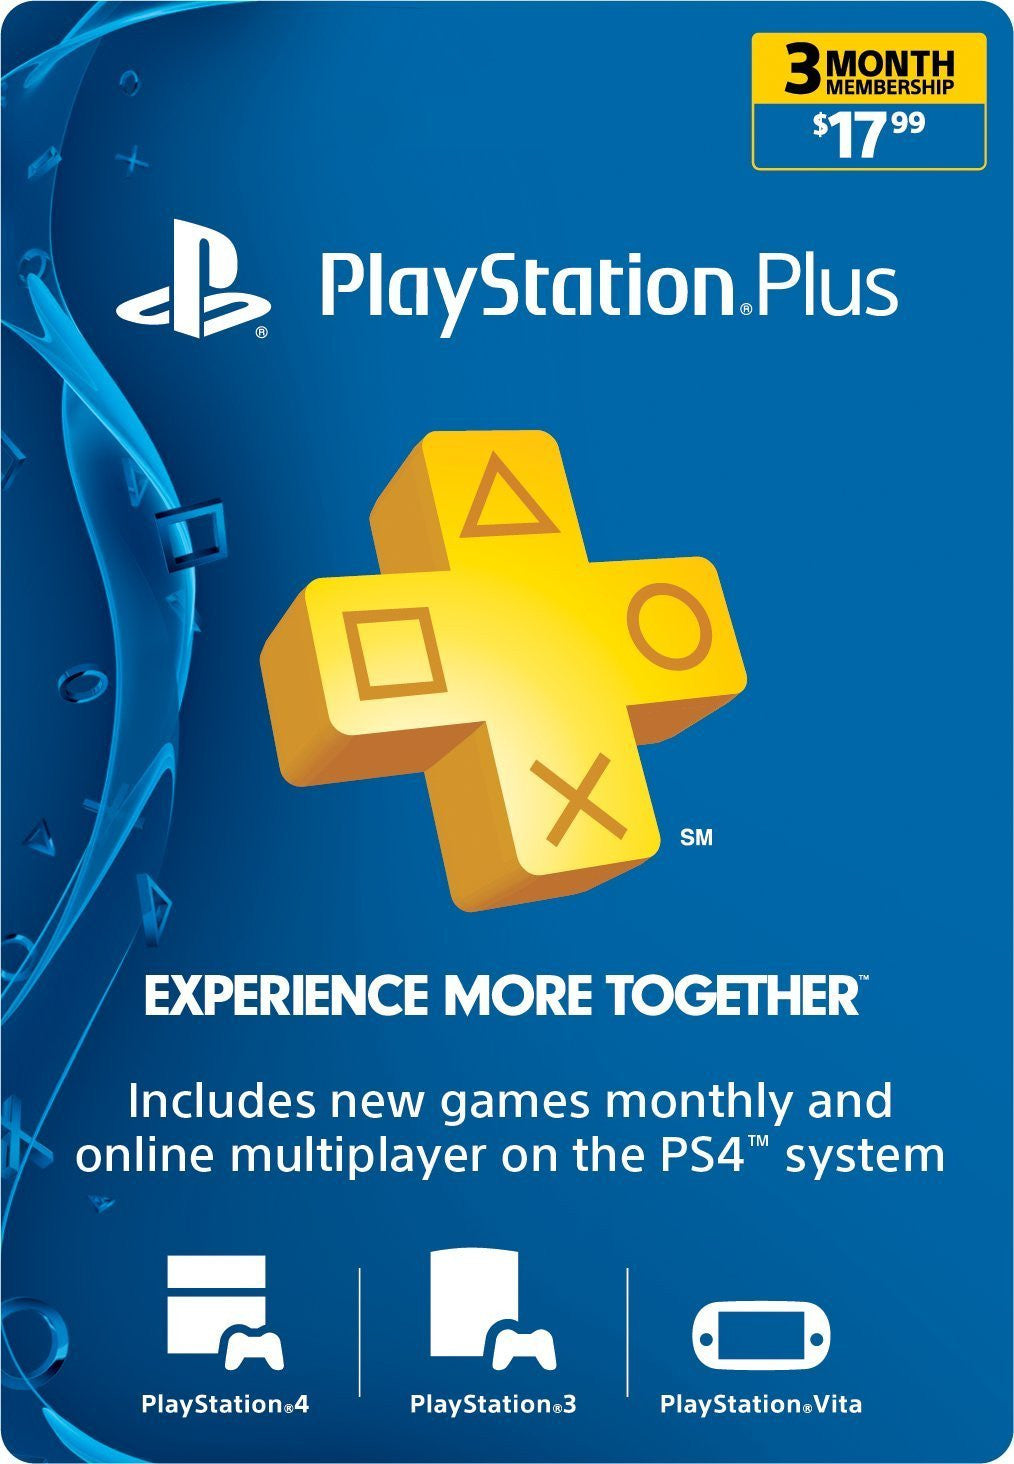 How to join playstation network plus